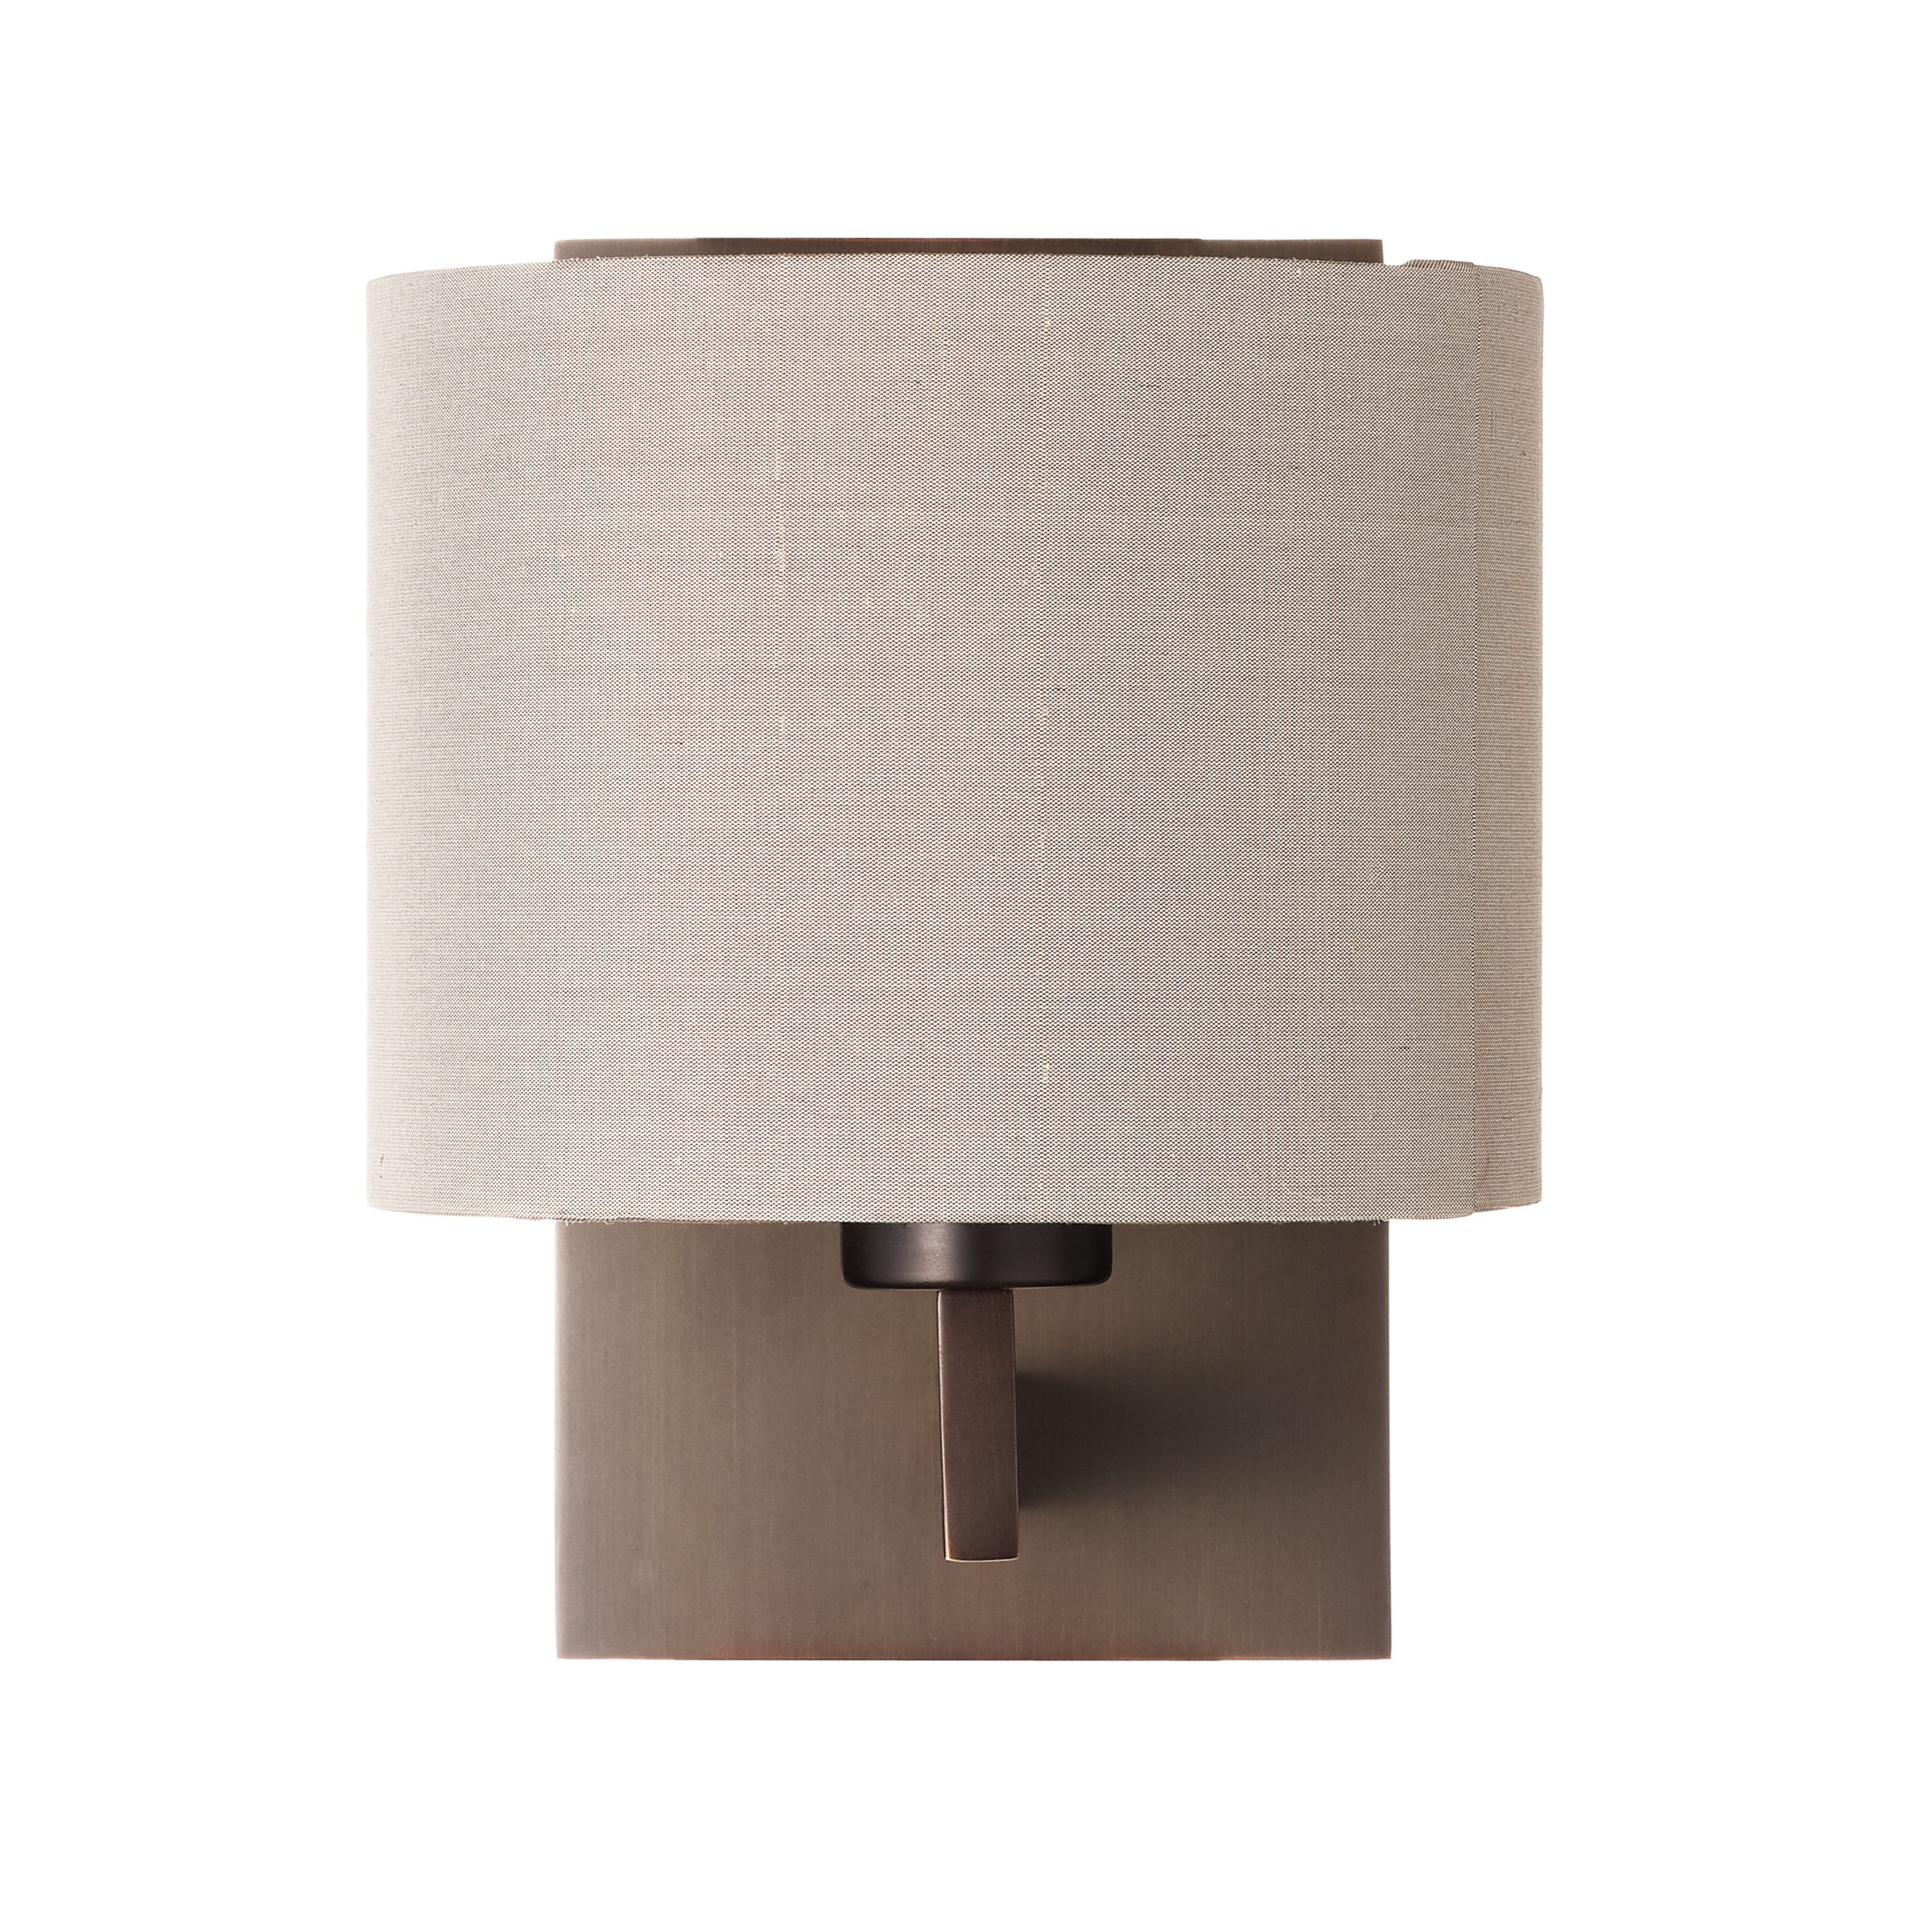 John Lewis Wall Lamp Shades : John Lewis Olan Wall Light, Bronze/Oyster - review, compare prices, buy online